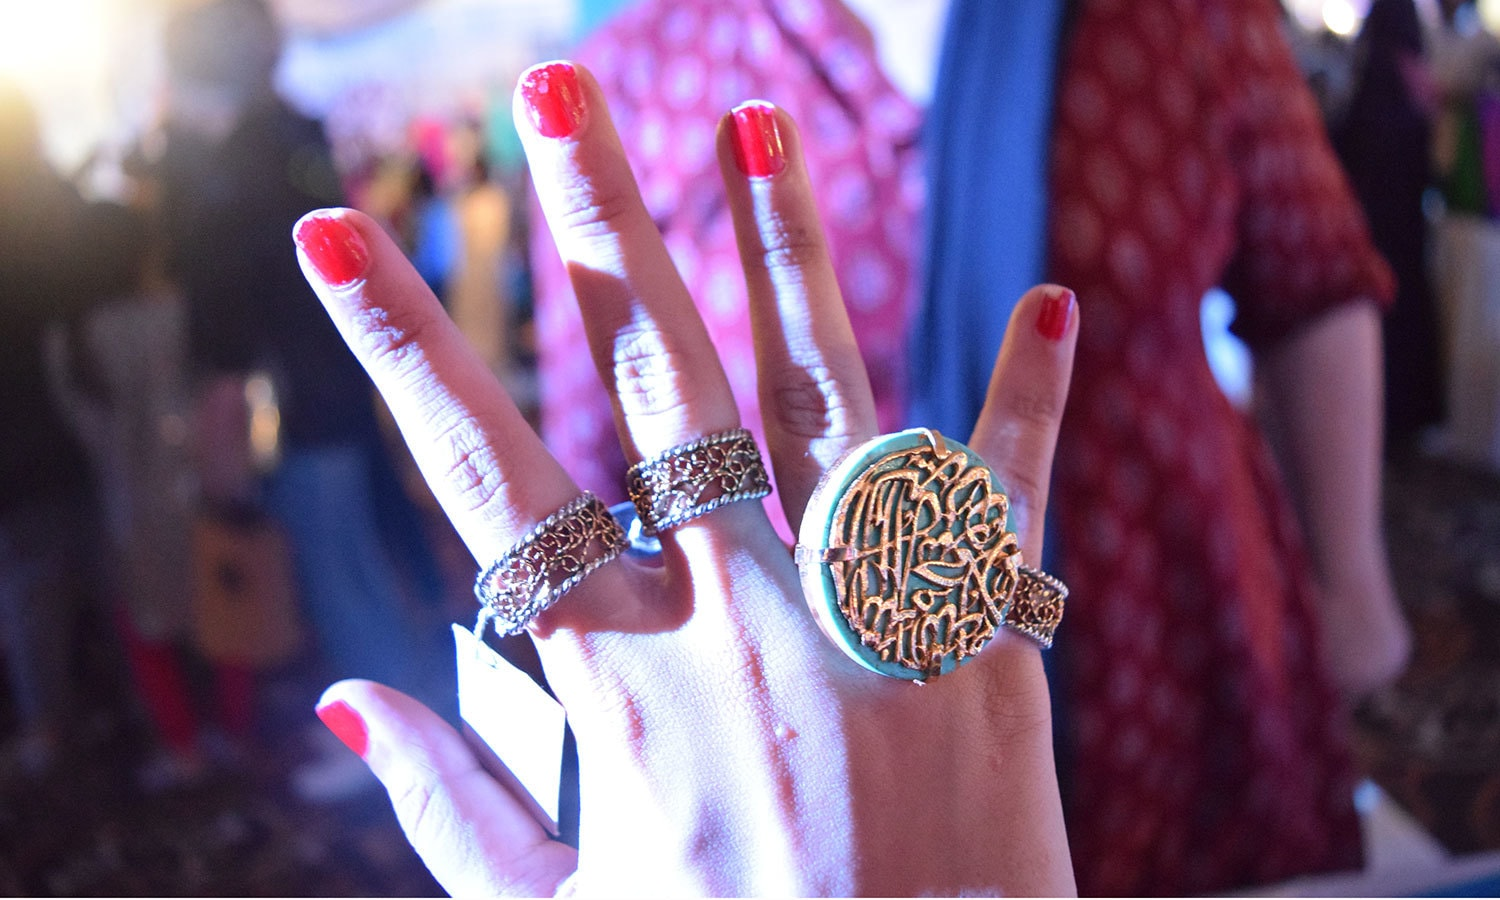 Put a ring on it! — Photo by Zoya Anwer